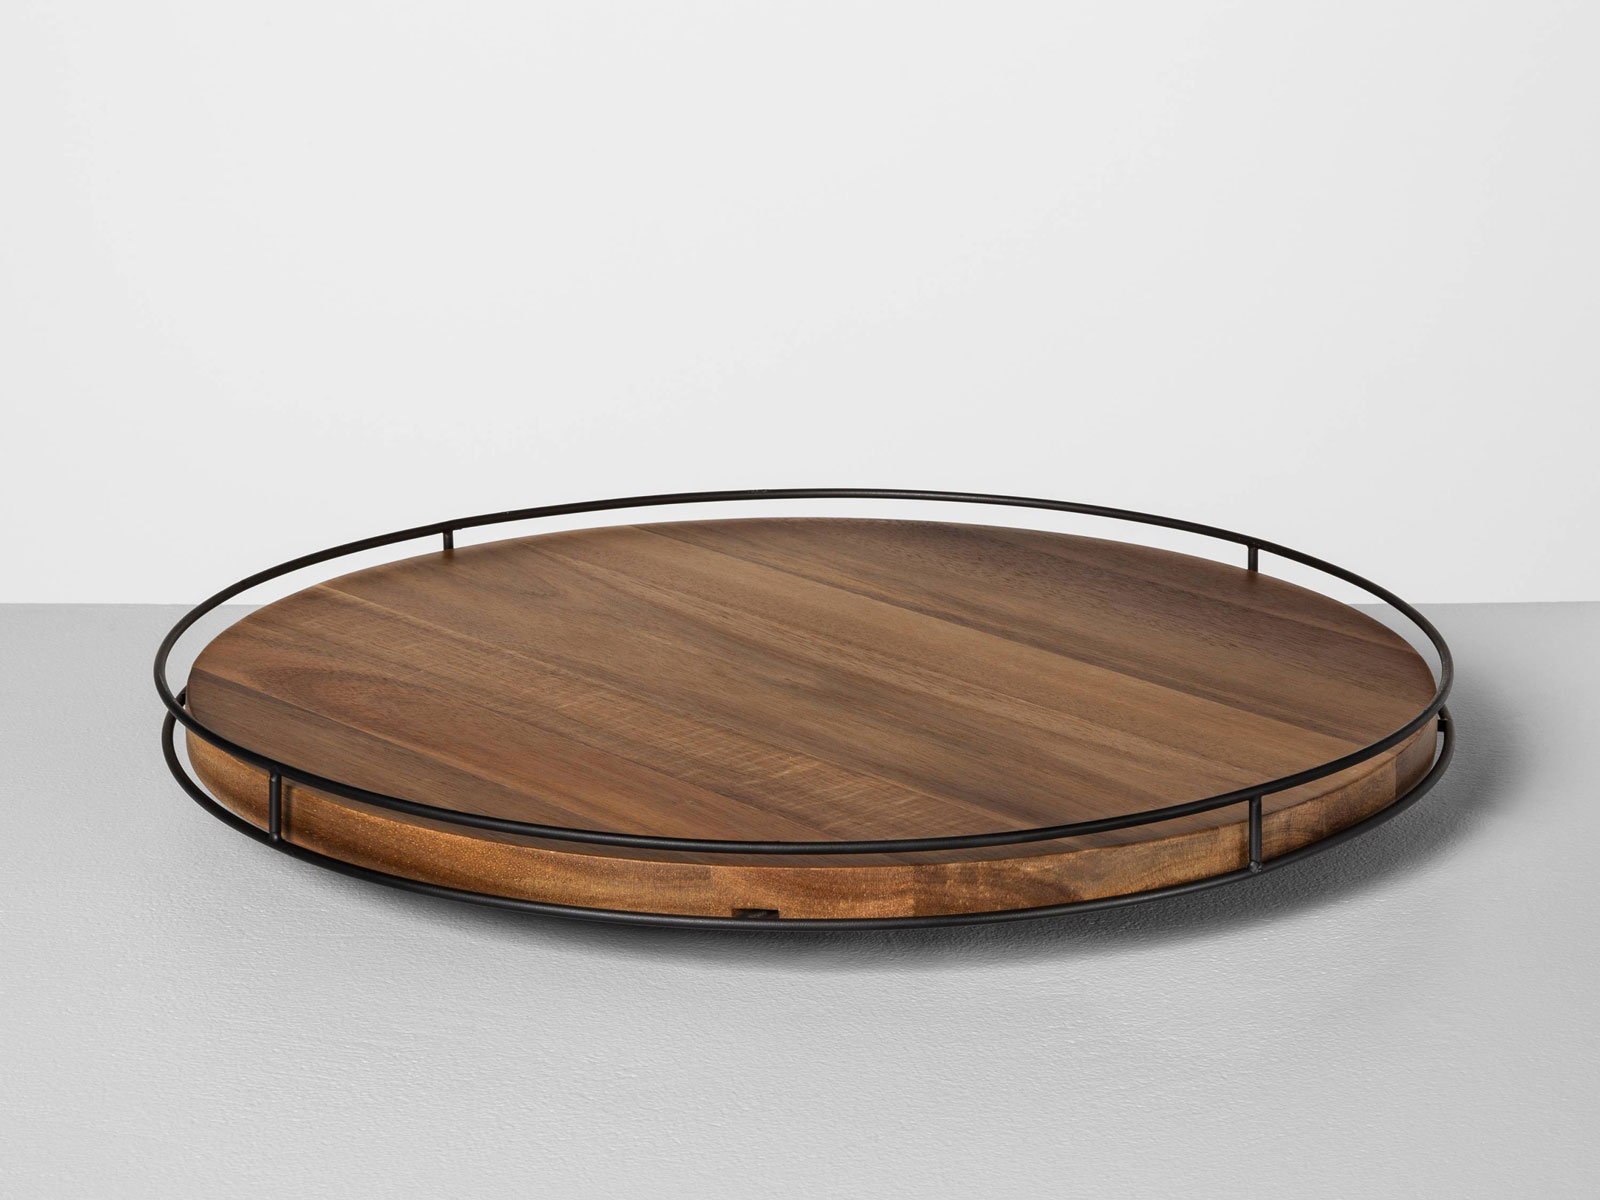 hearth and hand kitchen fall 2019 lazy susan